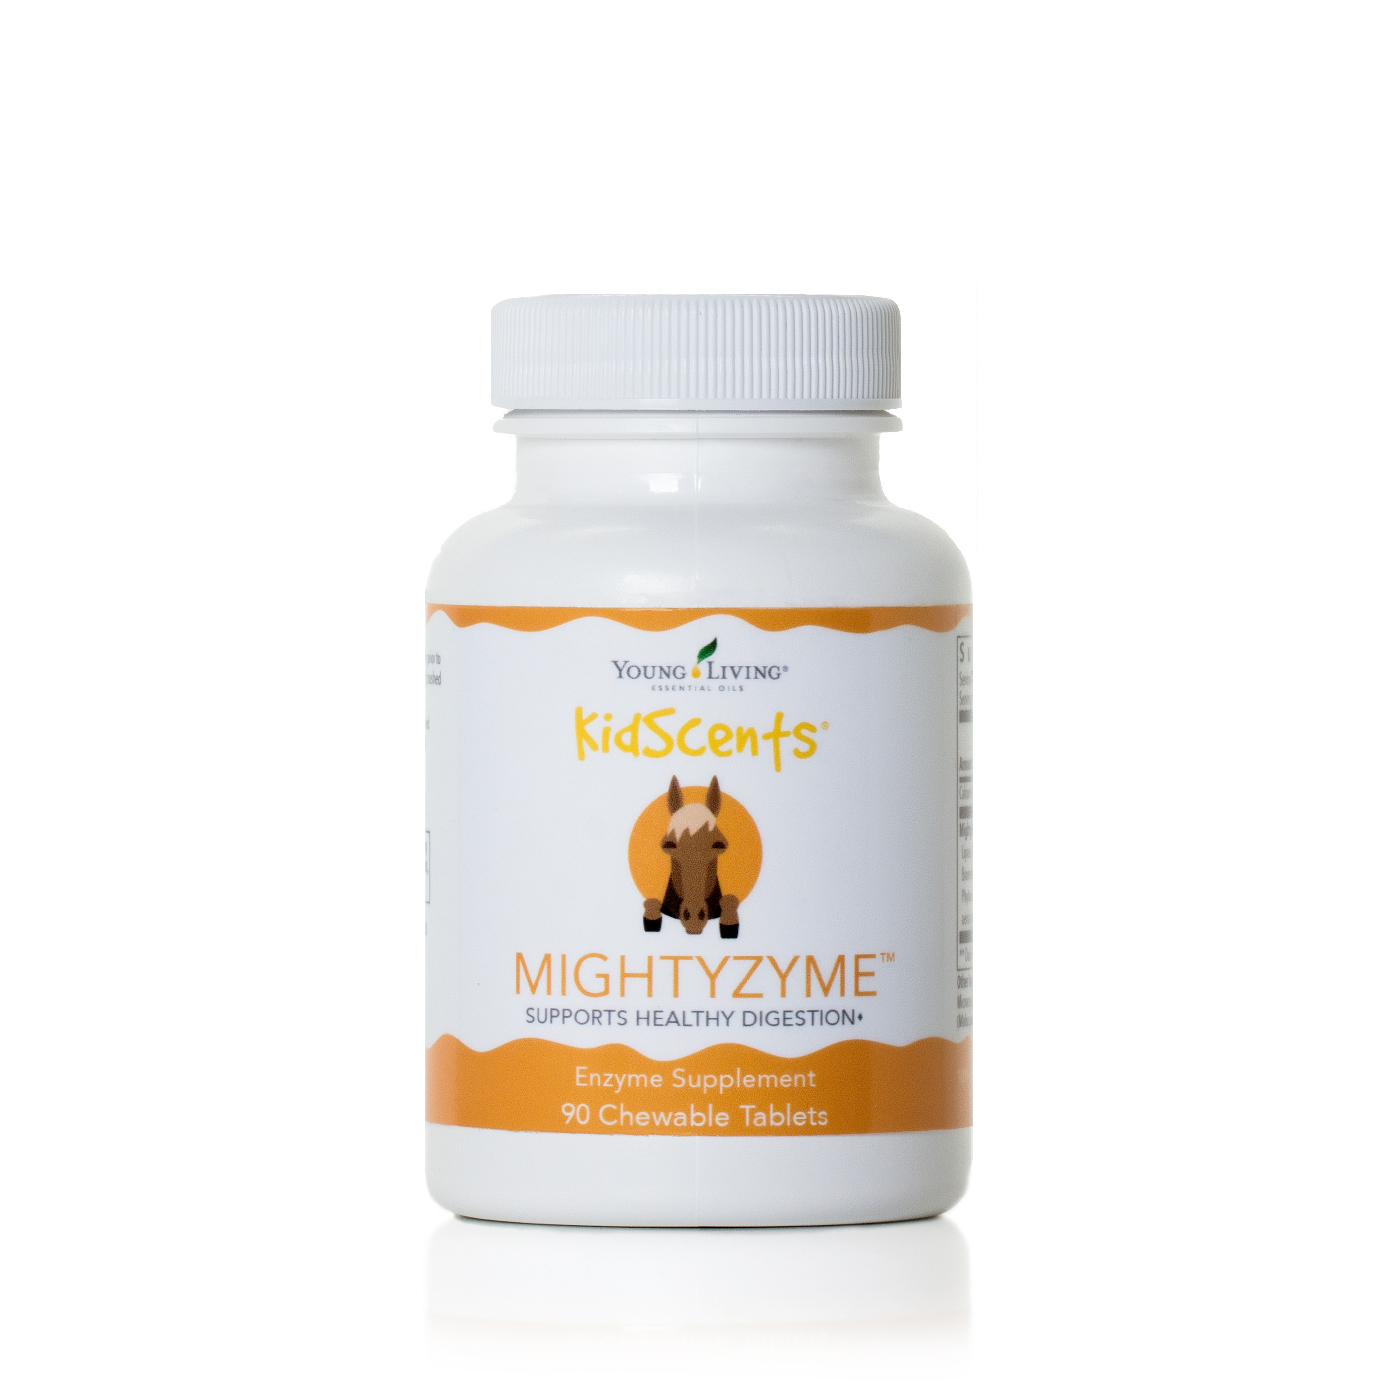 KidScents - MightyZyme Chewable Tablets